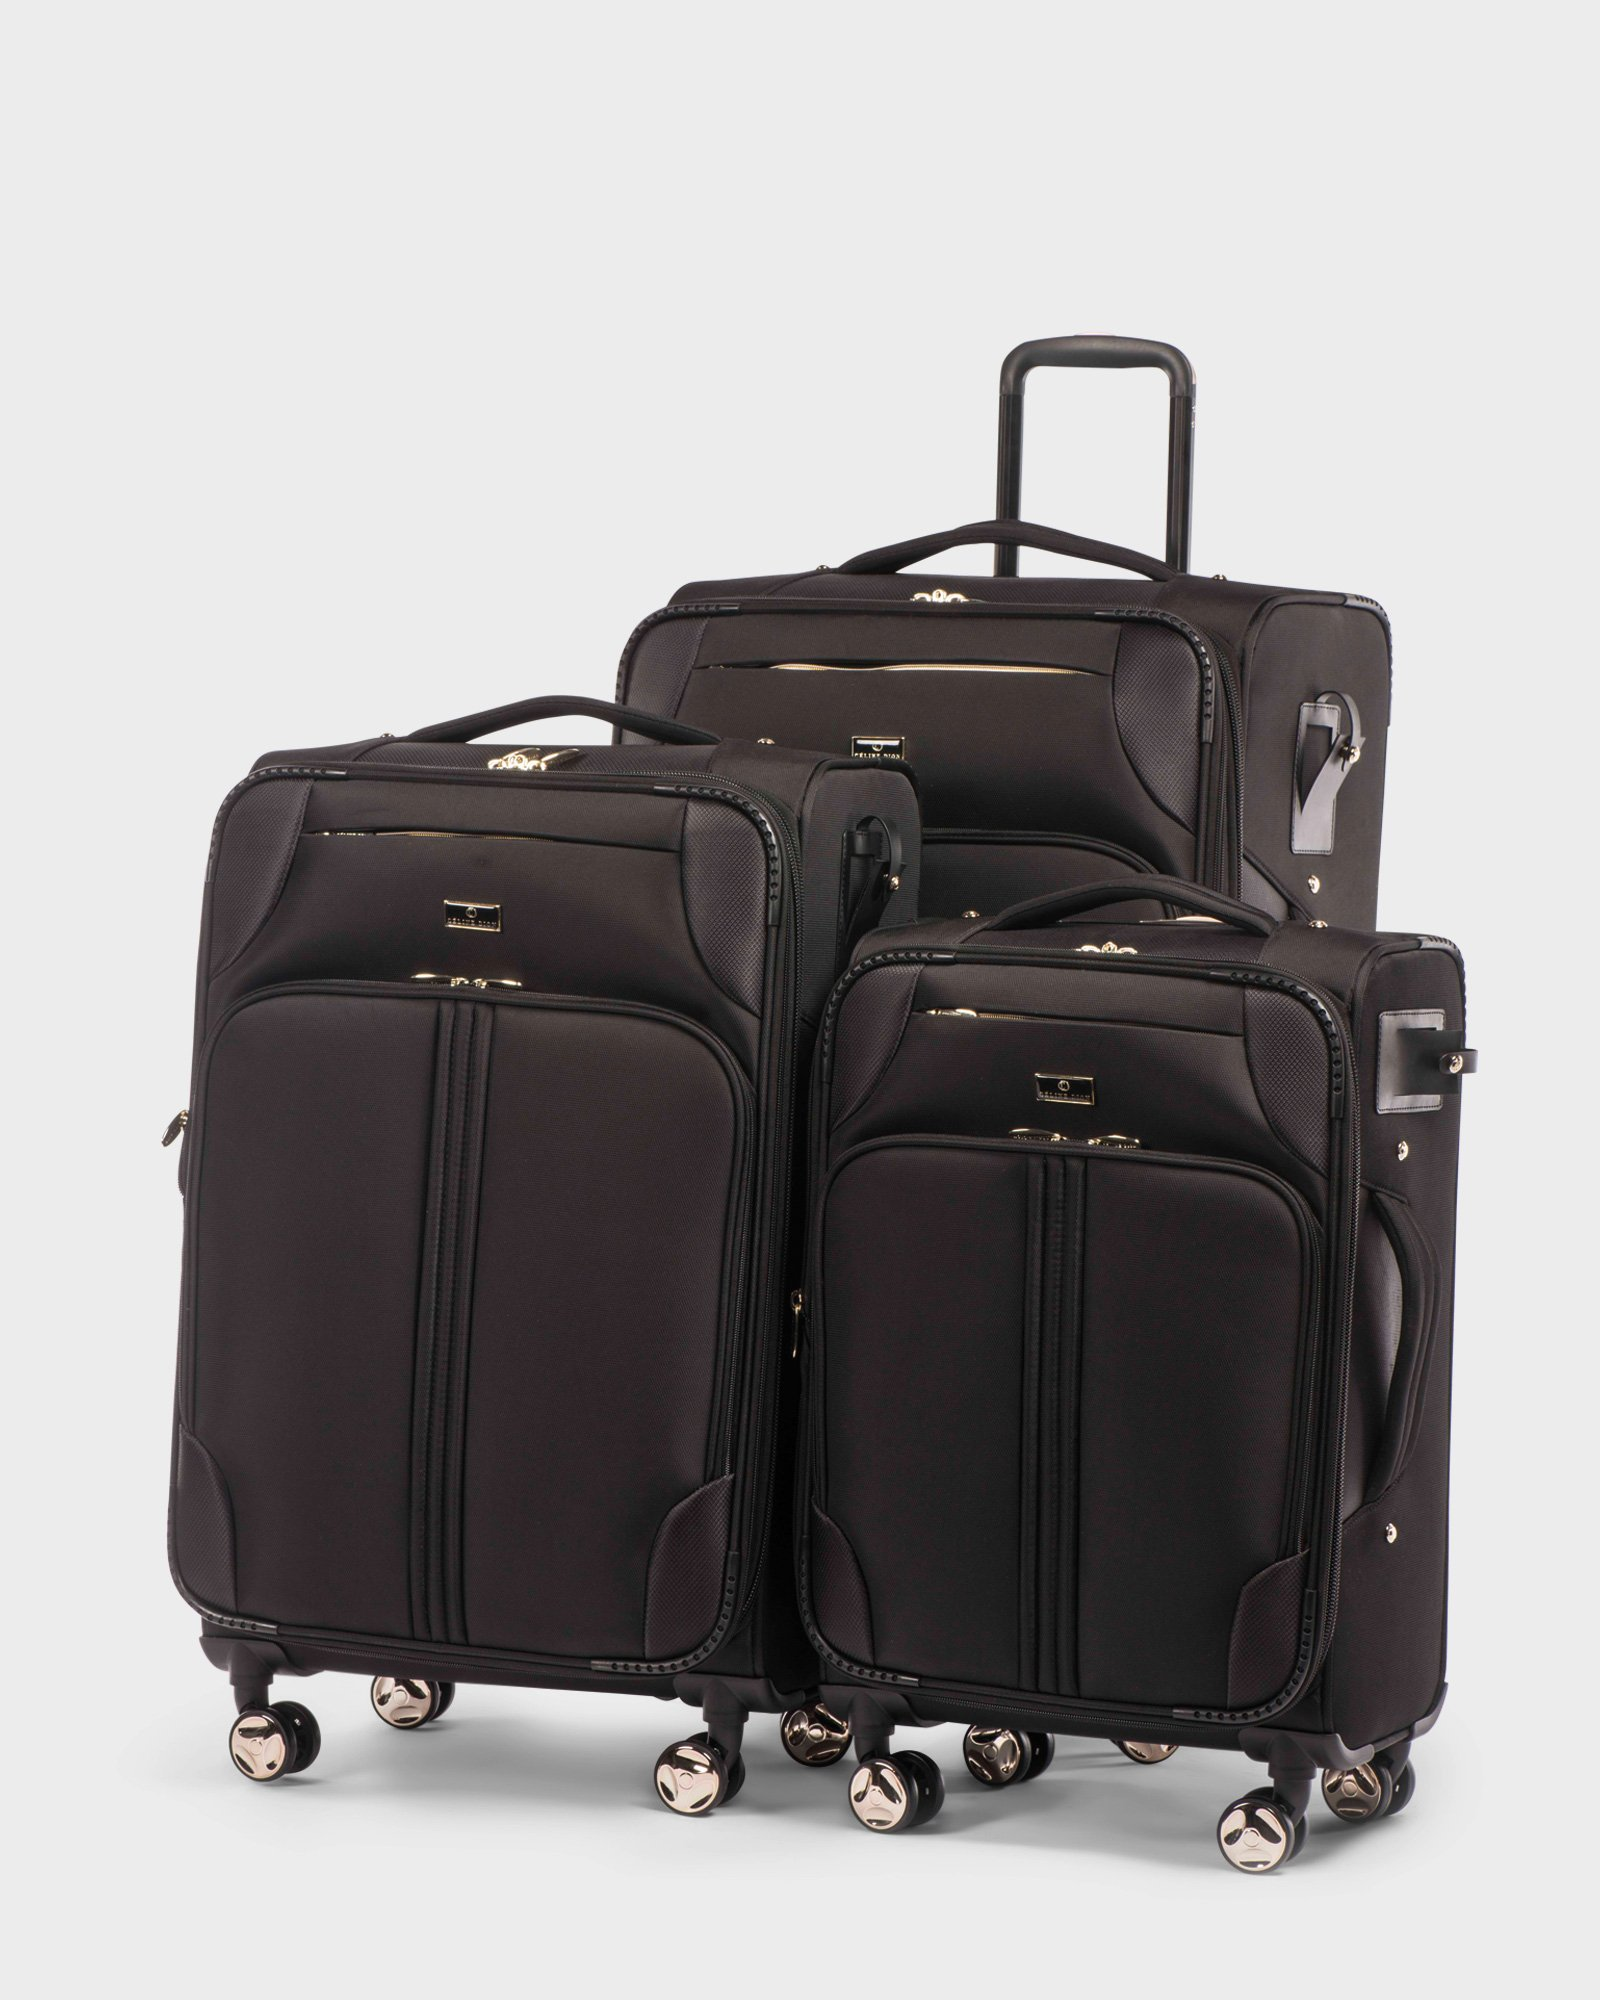 48bbd661c5 TRIO-Luggage Set - Céline Dion - Zoom